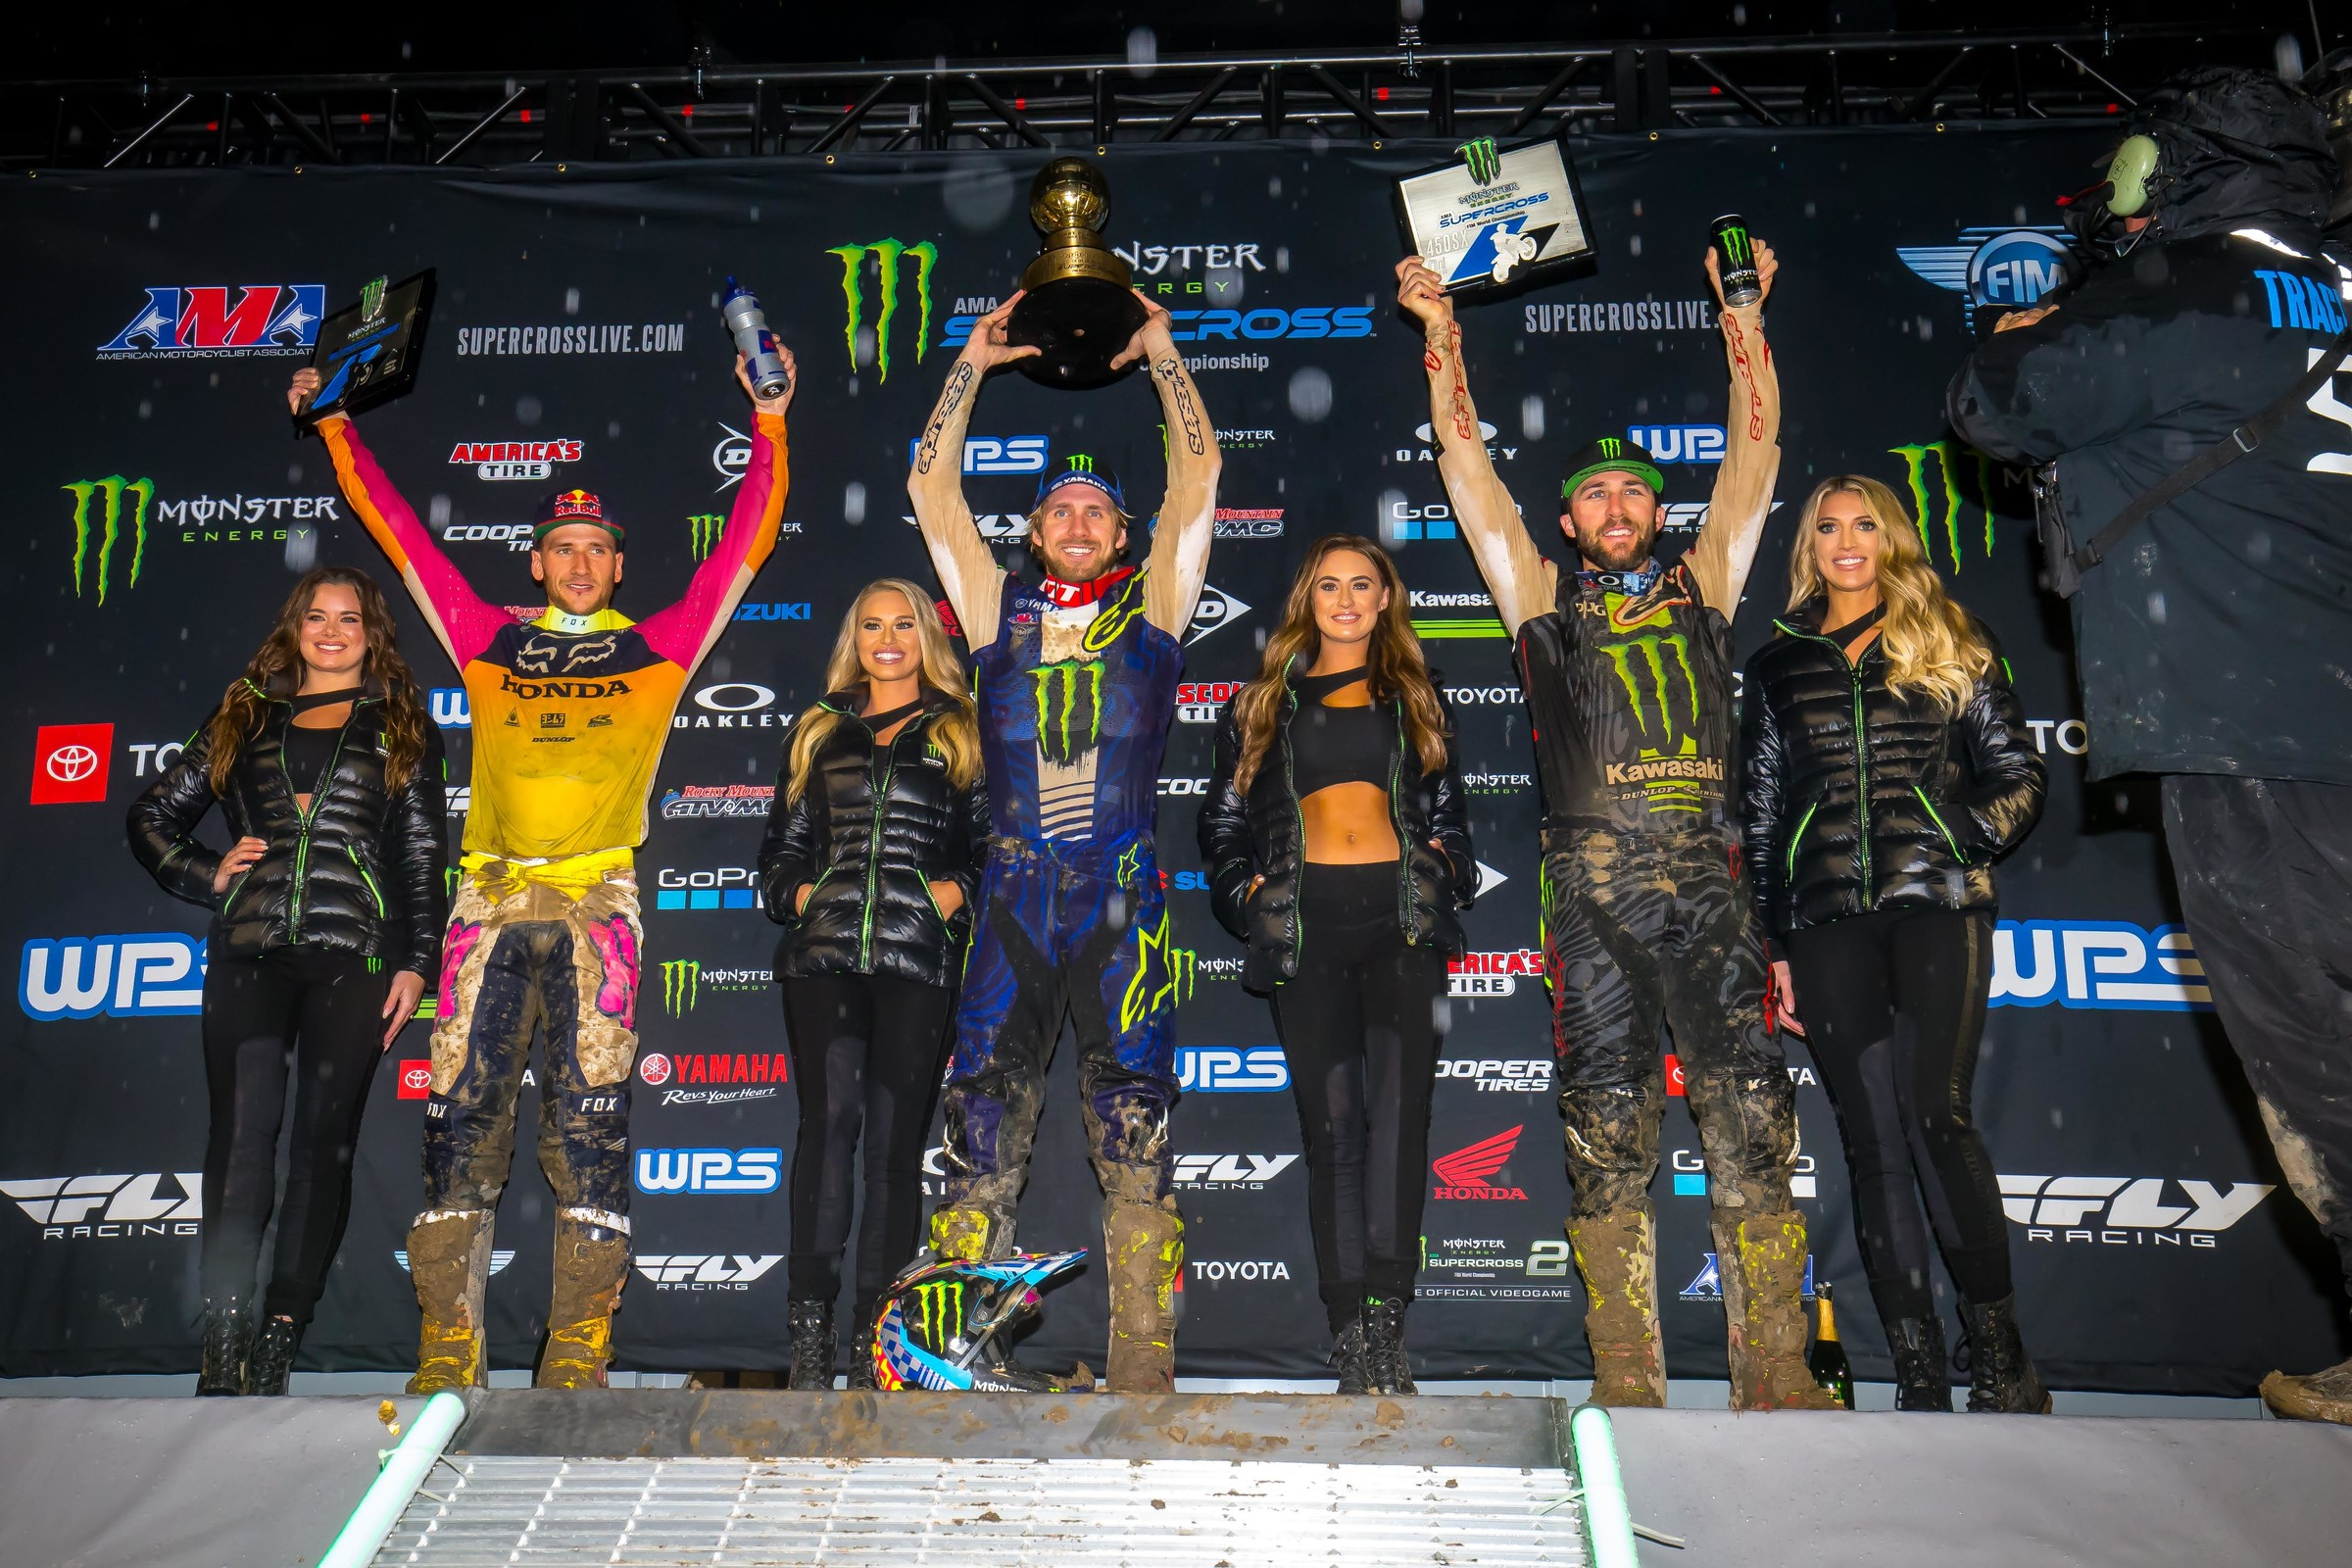 Saturday was the first time Eli Tomac earned a podium finish in the 450SX class at Anaheim 1.